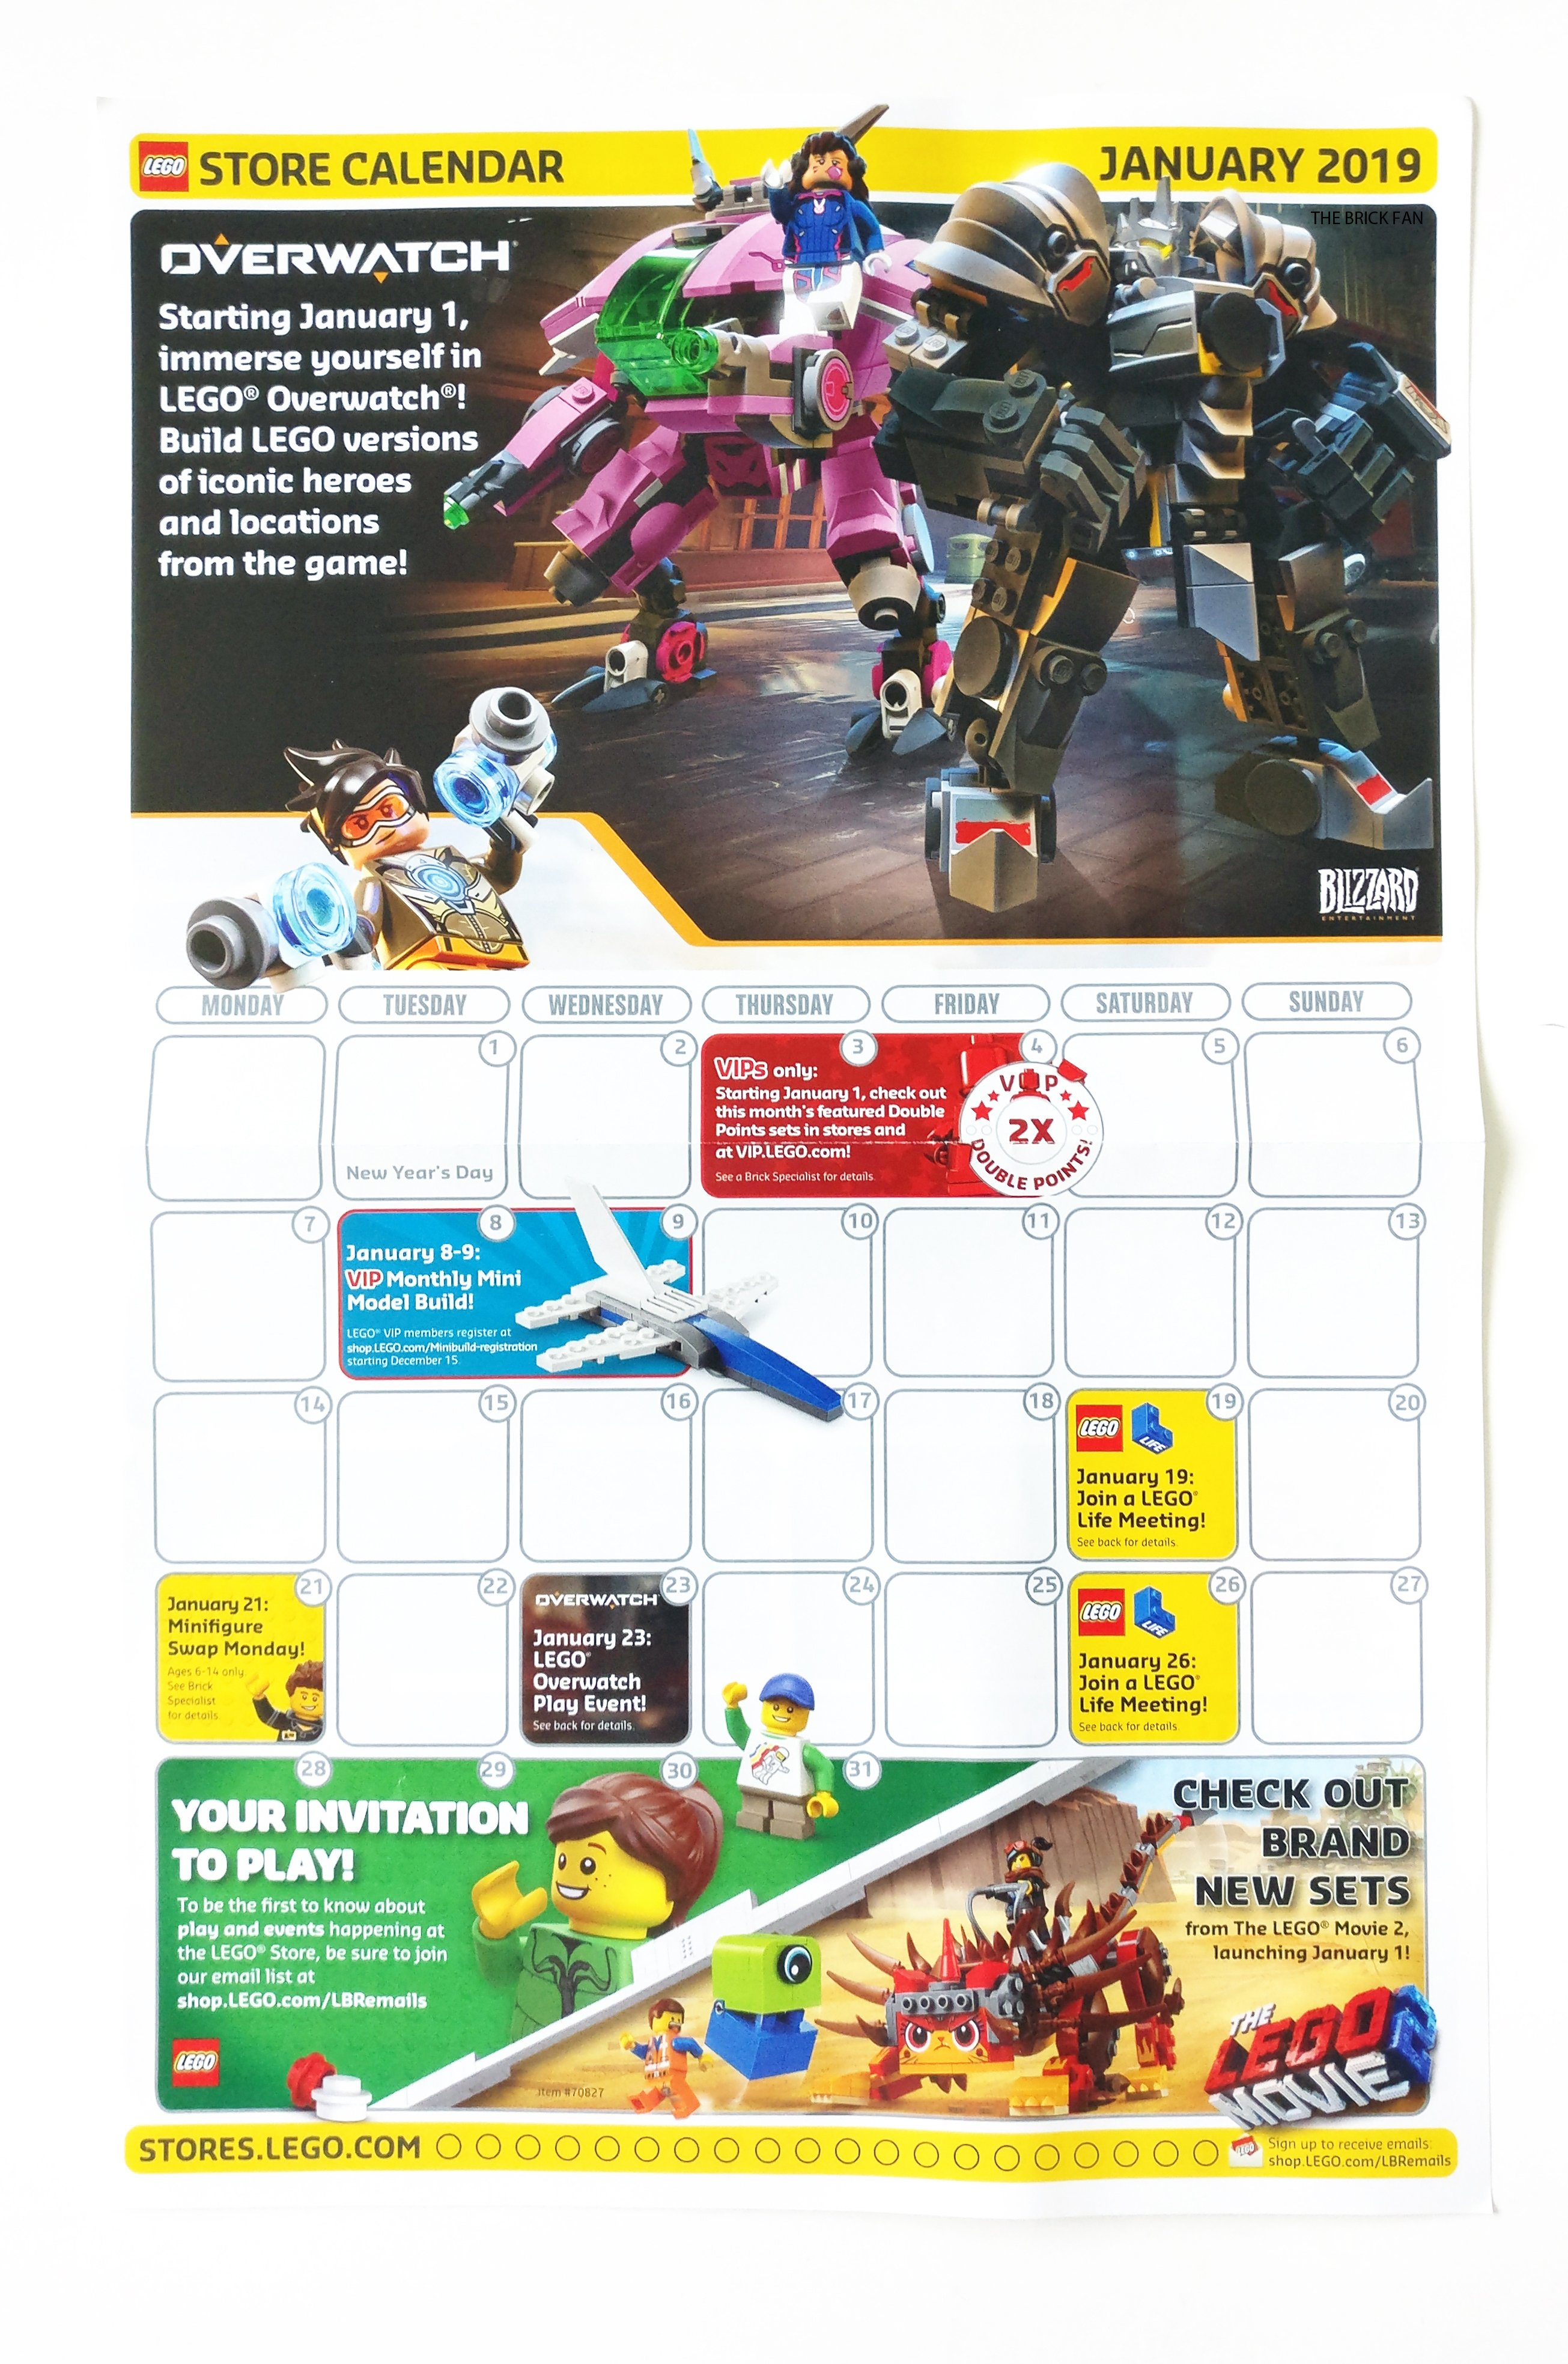 Lego January 2019 Store Calendar Promotions & Events – The Brick Fan Calendar 2019 In Stores